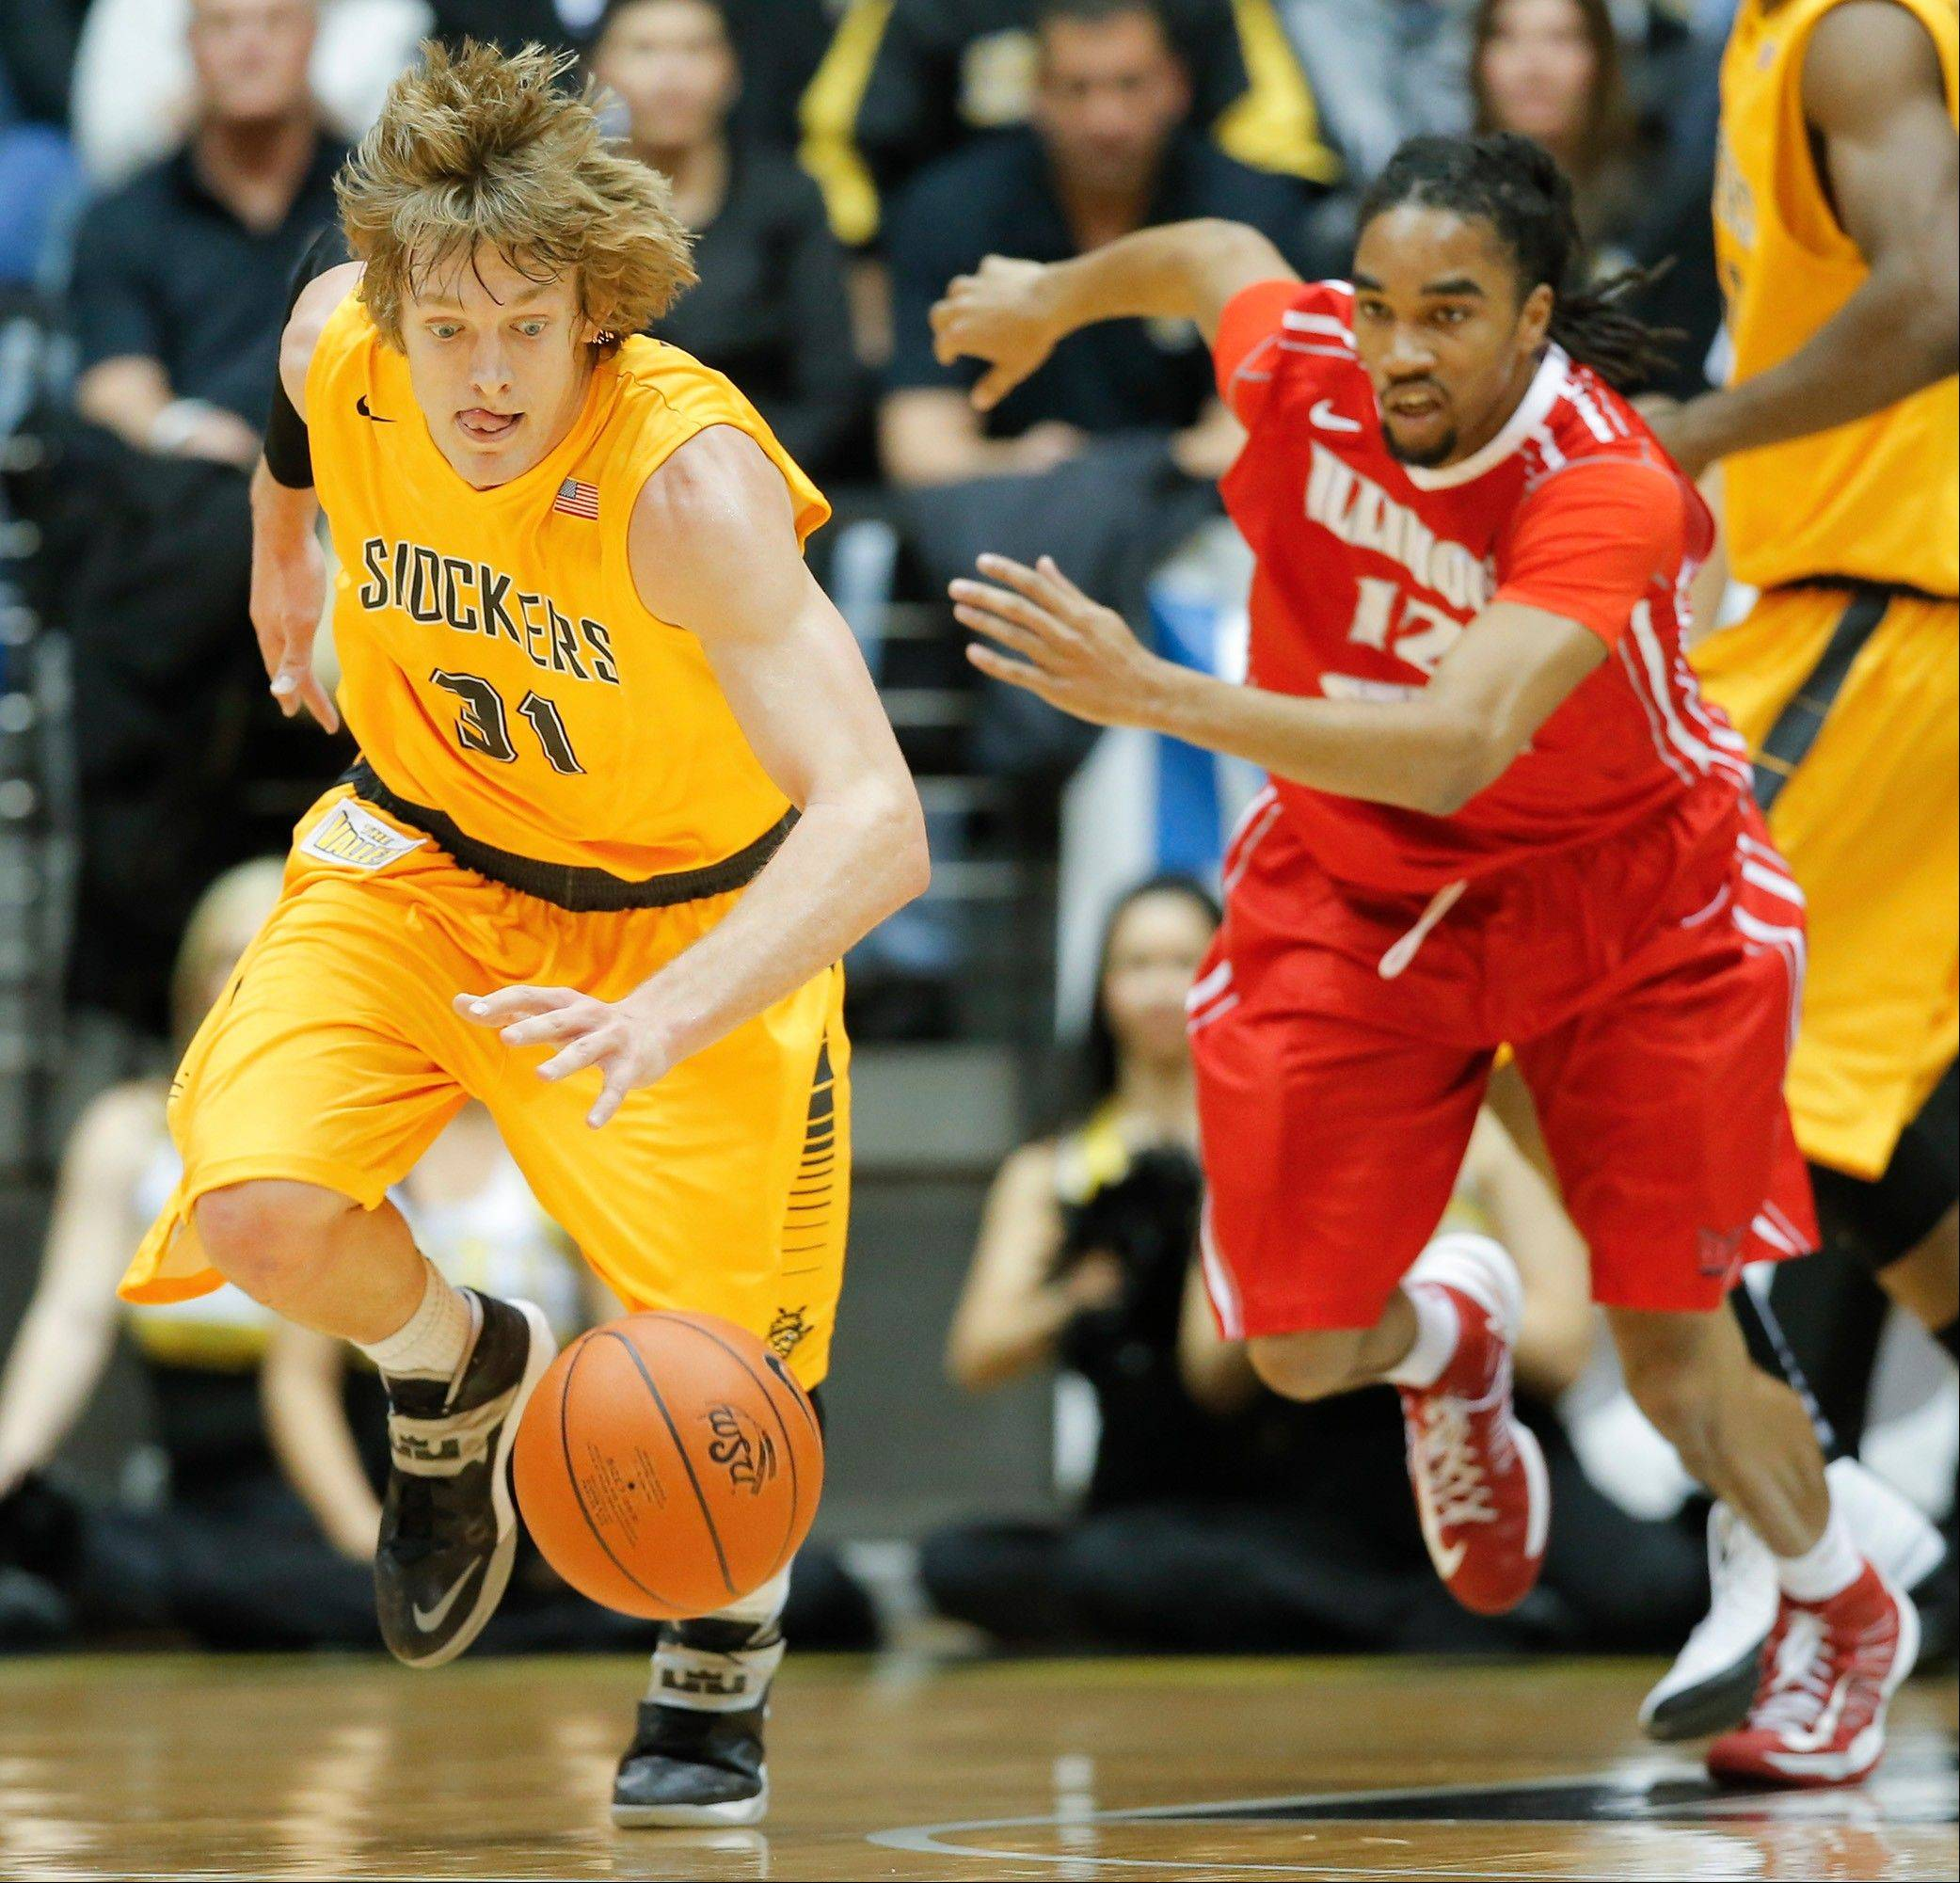 Wichita State's Ron Baker, left, steals the ball from Illinois State's Tony Wills during the first half of an NCAA college basketball game in Wichita, Kan., Wednesday, Jan. 8, 2014. (AP Photo/The Wichita Eagle, Travis Heying) LOCAL TV OUT; MAGAZINES OUT; LOCAL RADIO OUT; LOCAL INTERNET OUT